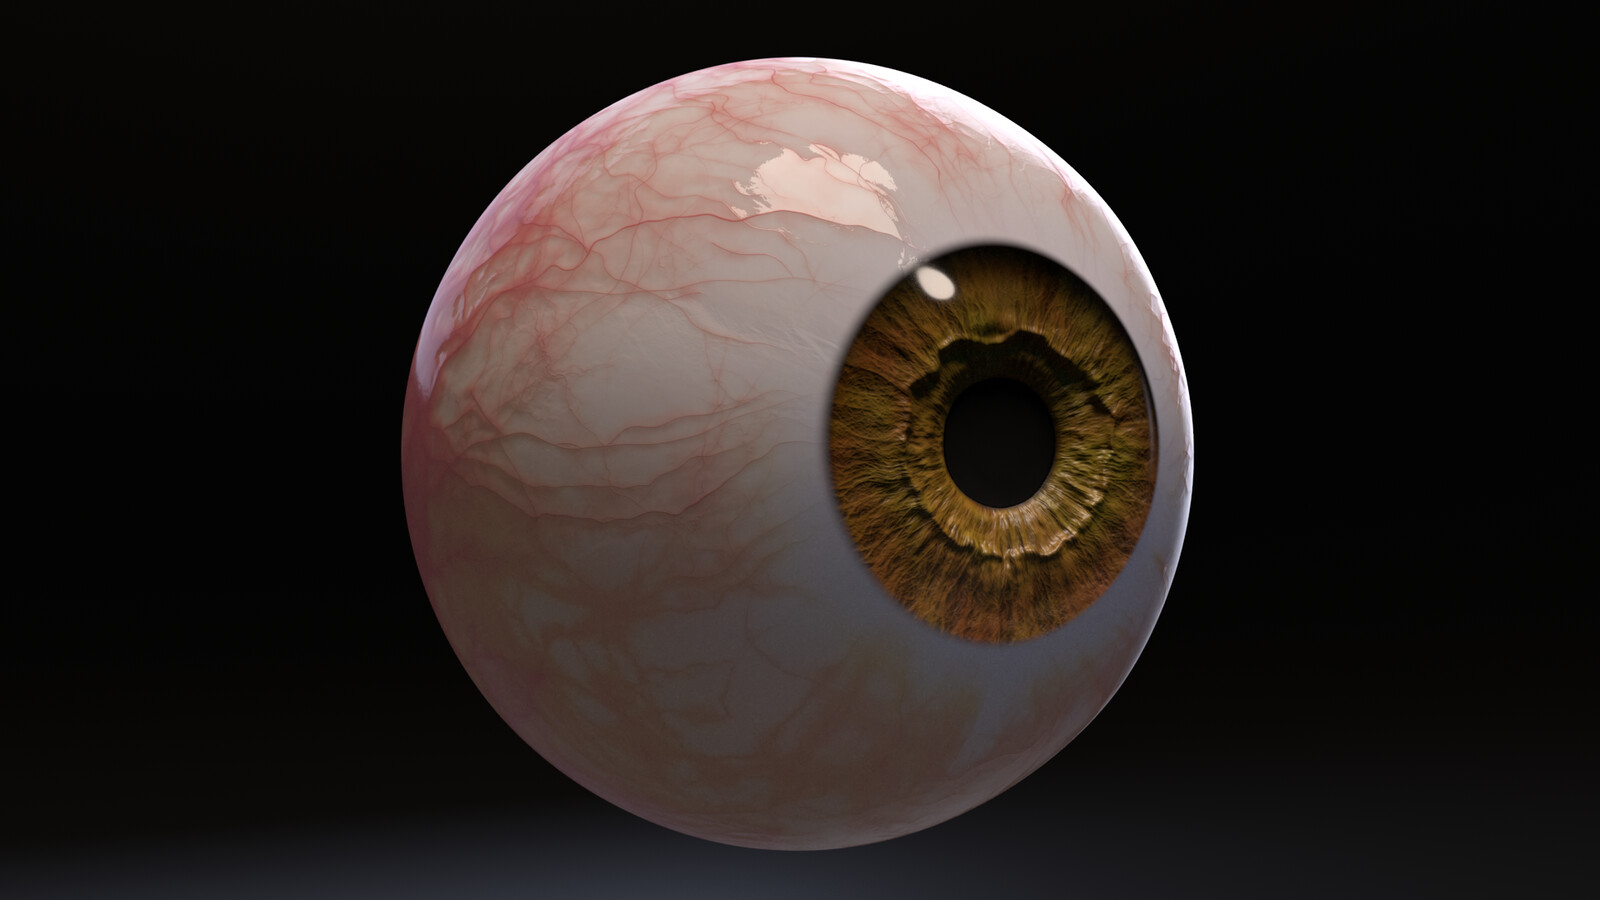 Photorealistic Eye with Pupil Dilation and Constriction